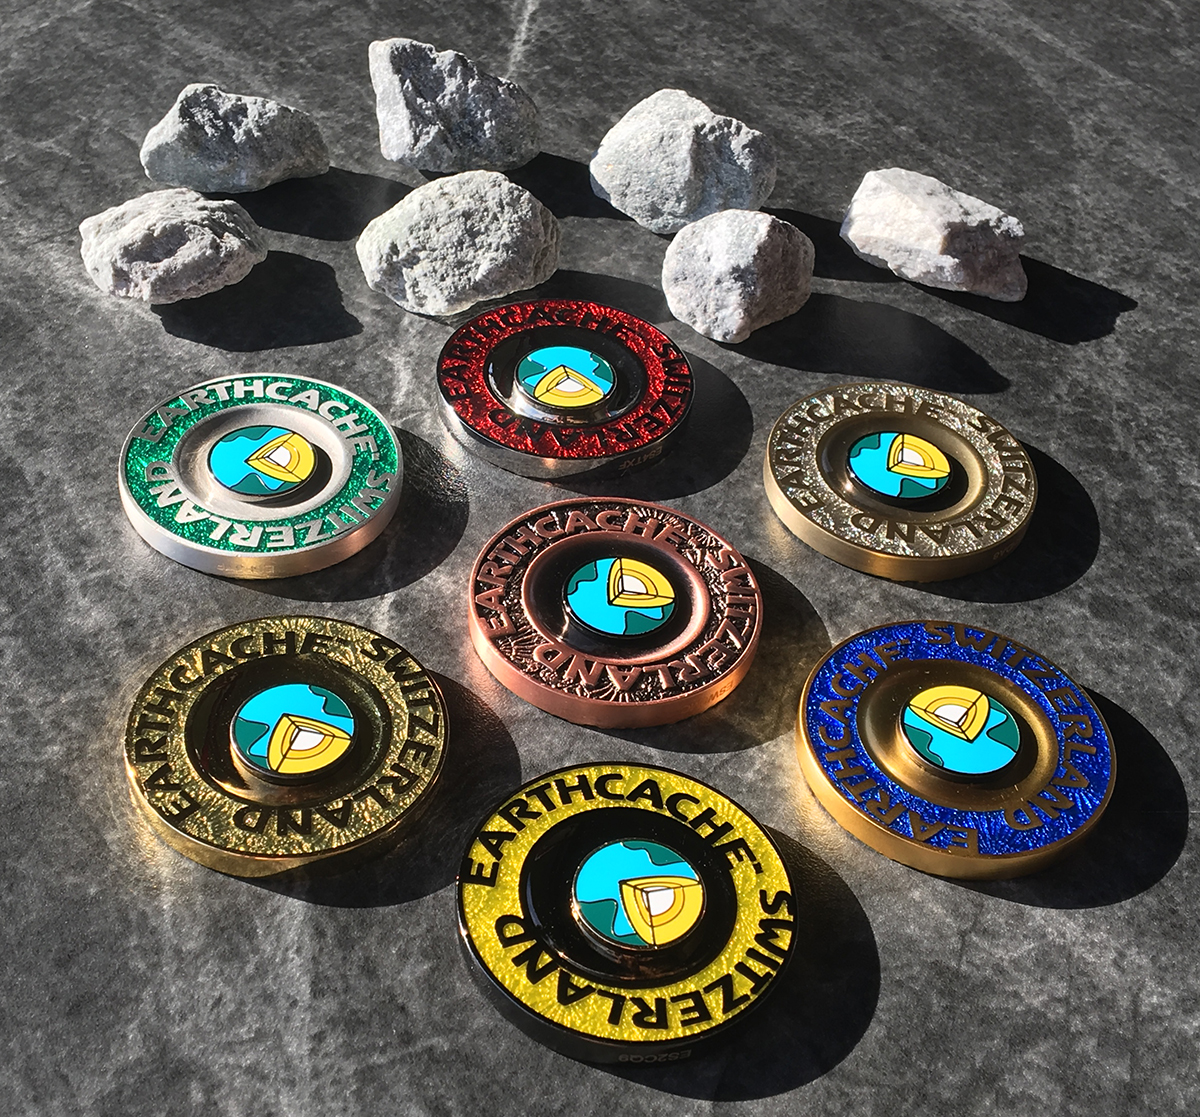 earthcache switzerland geocoins, 7er-set